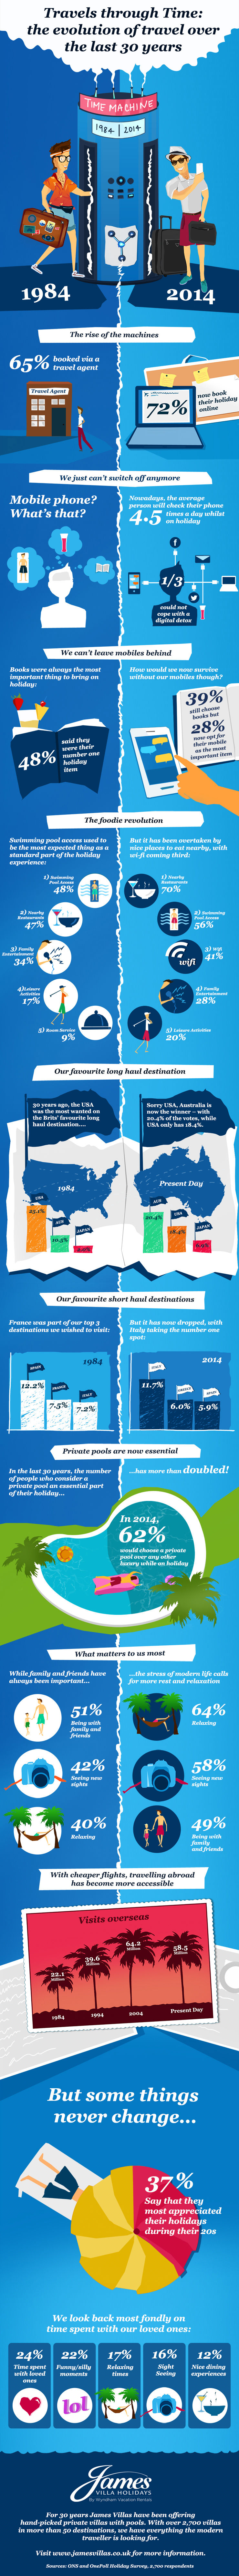 30 Years of Experience In The Travel Industry - Infographic